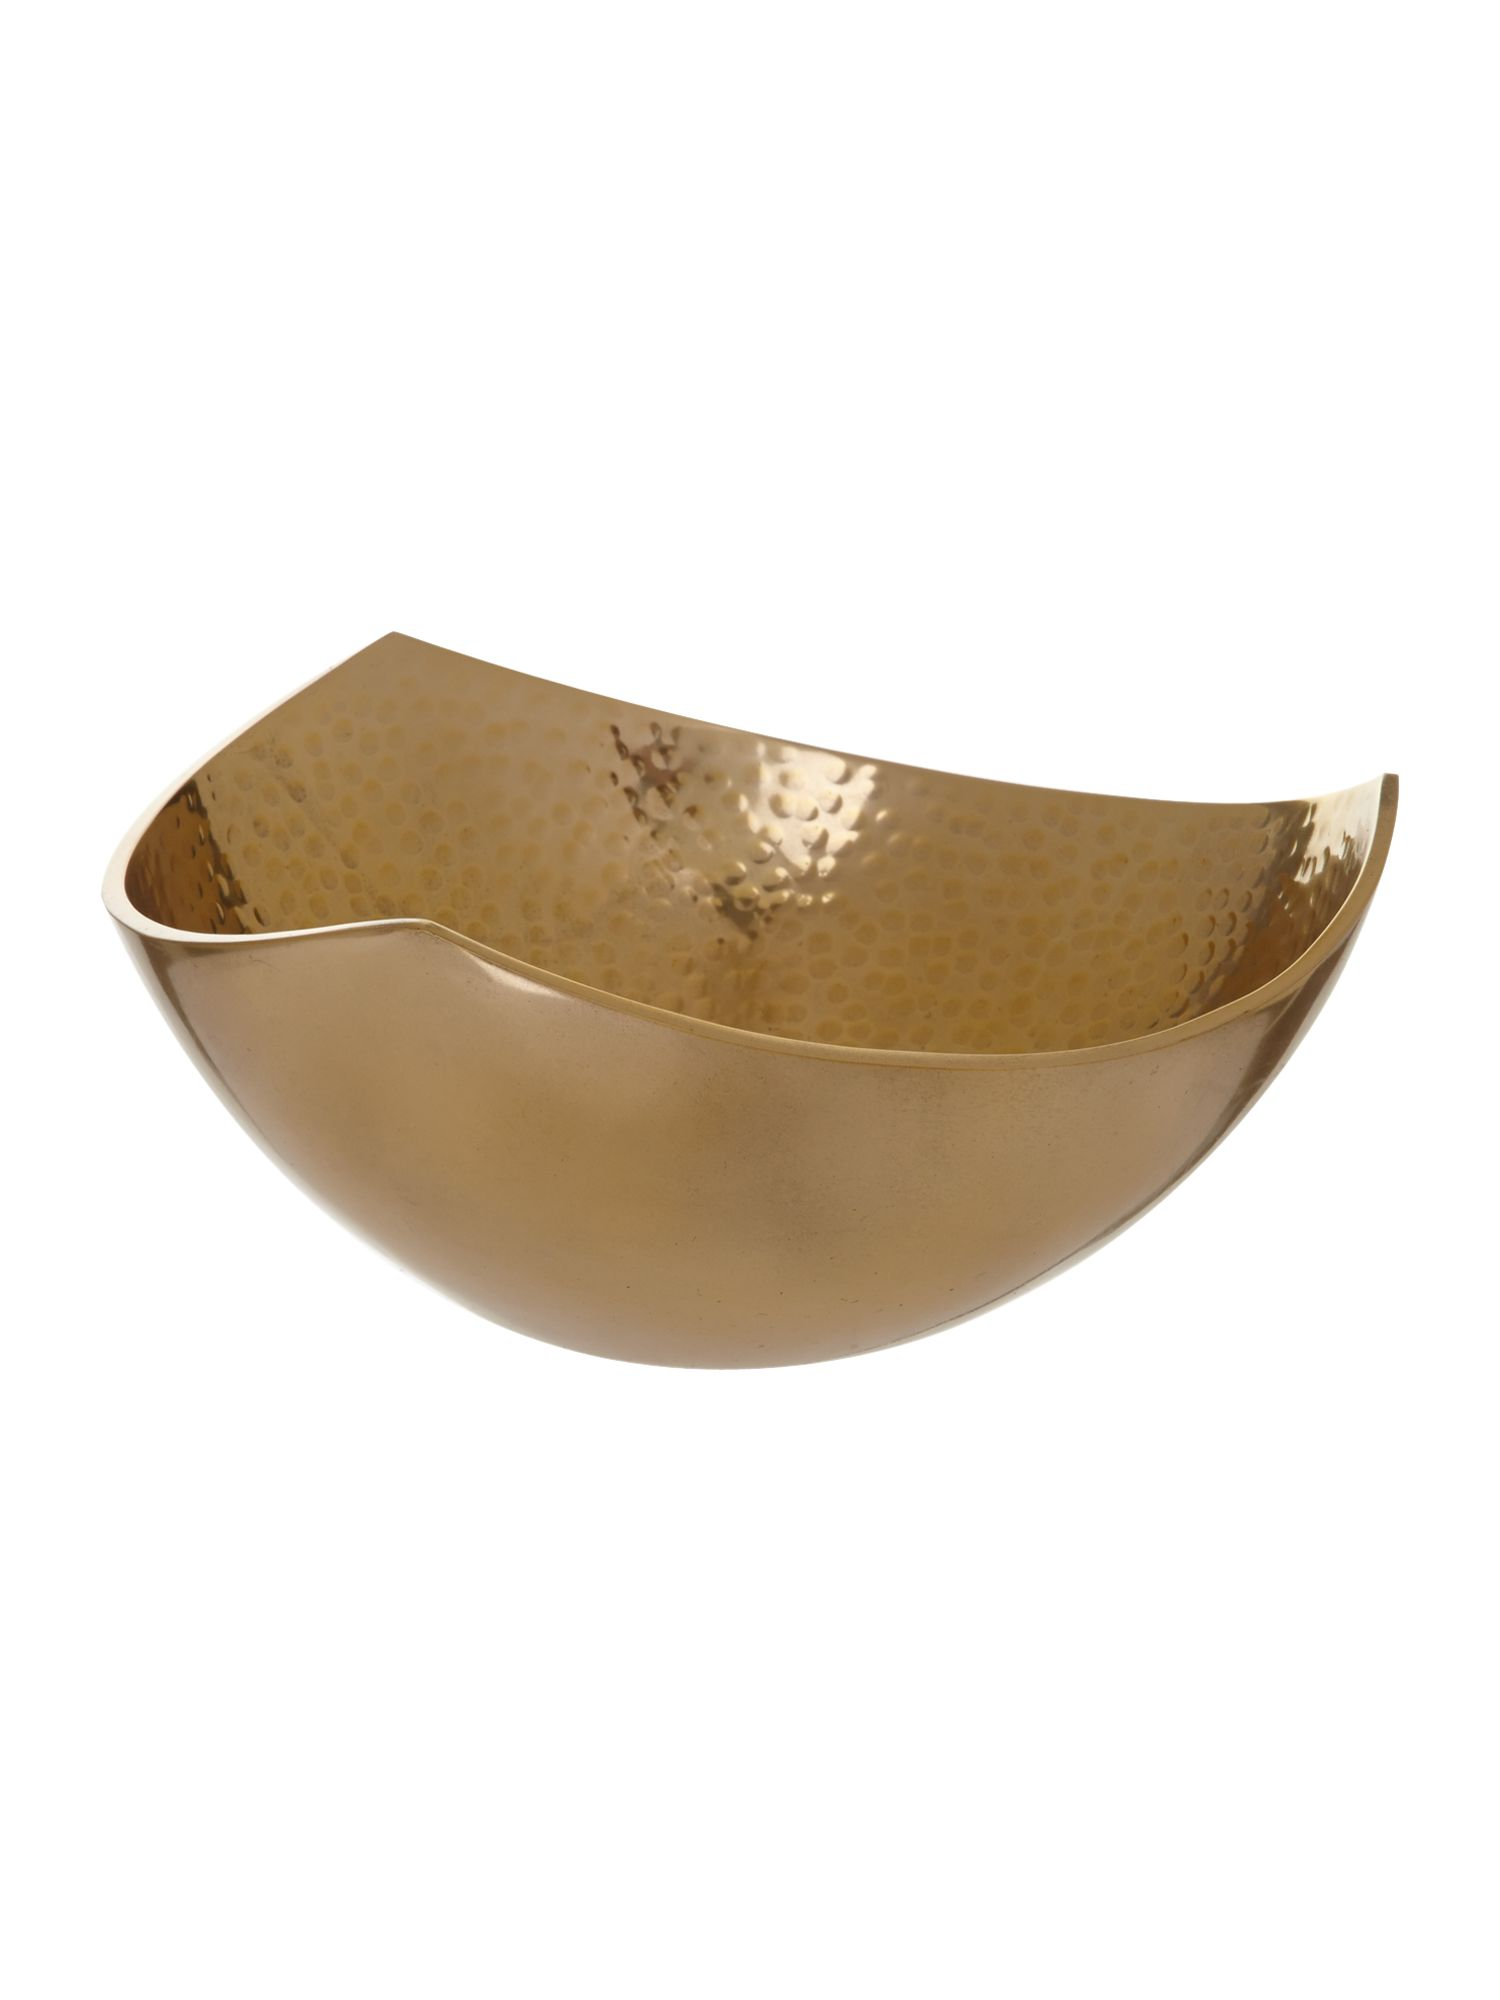 Beaten metal medium bowl